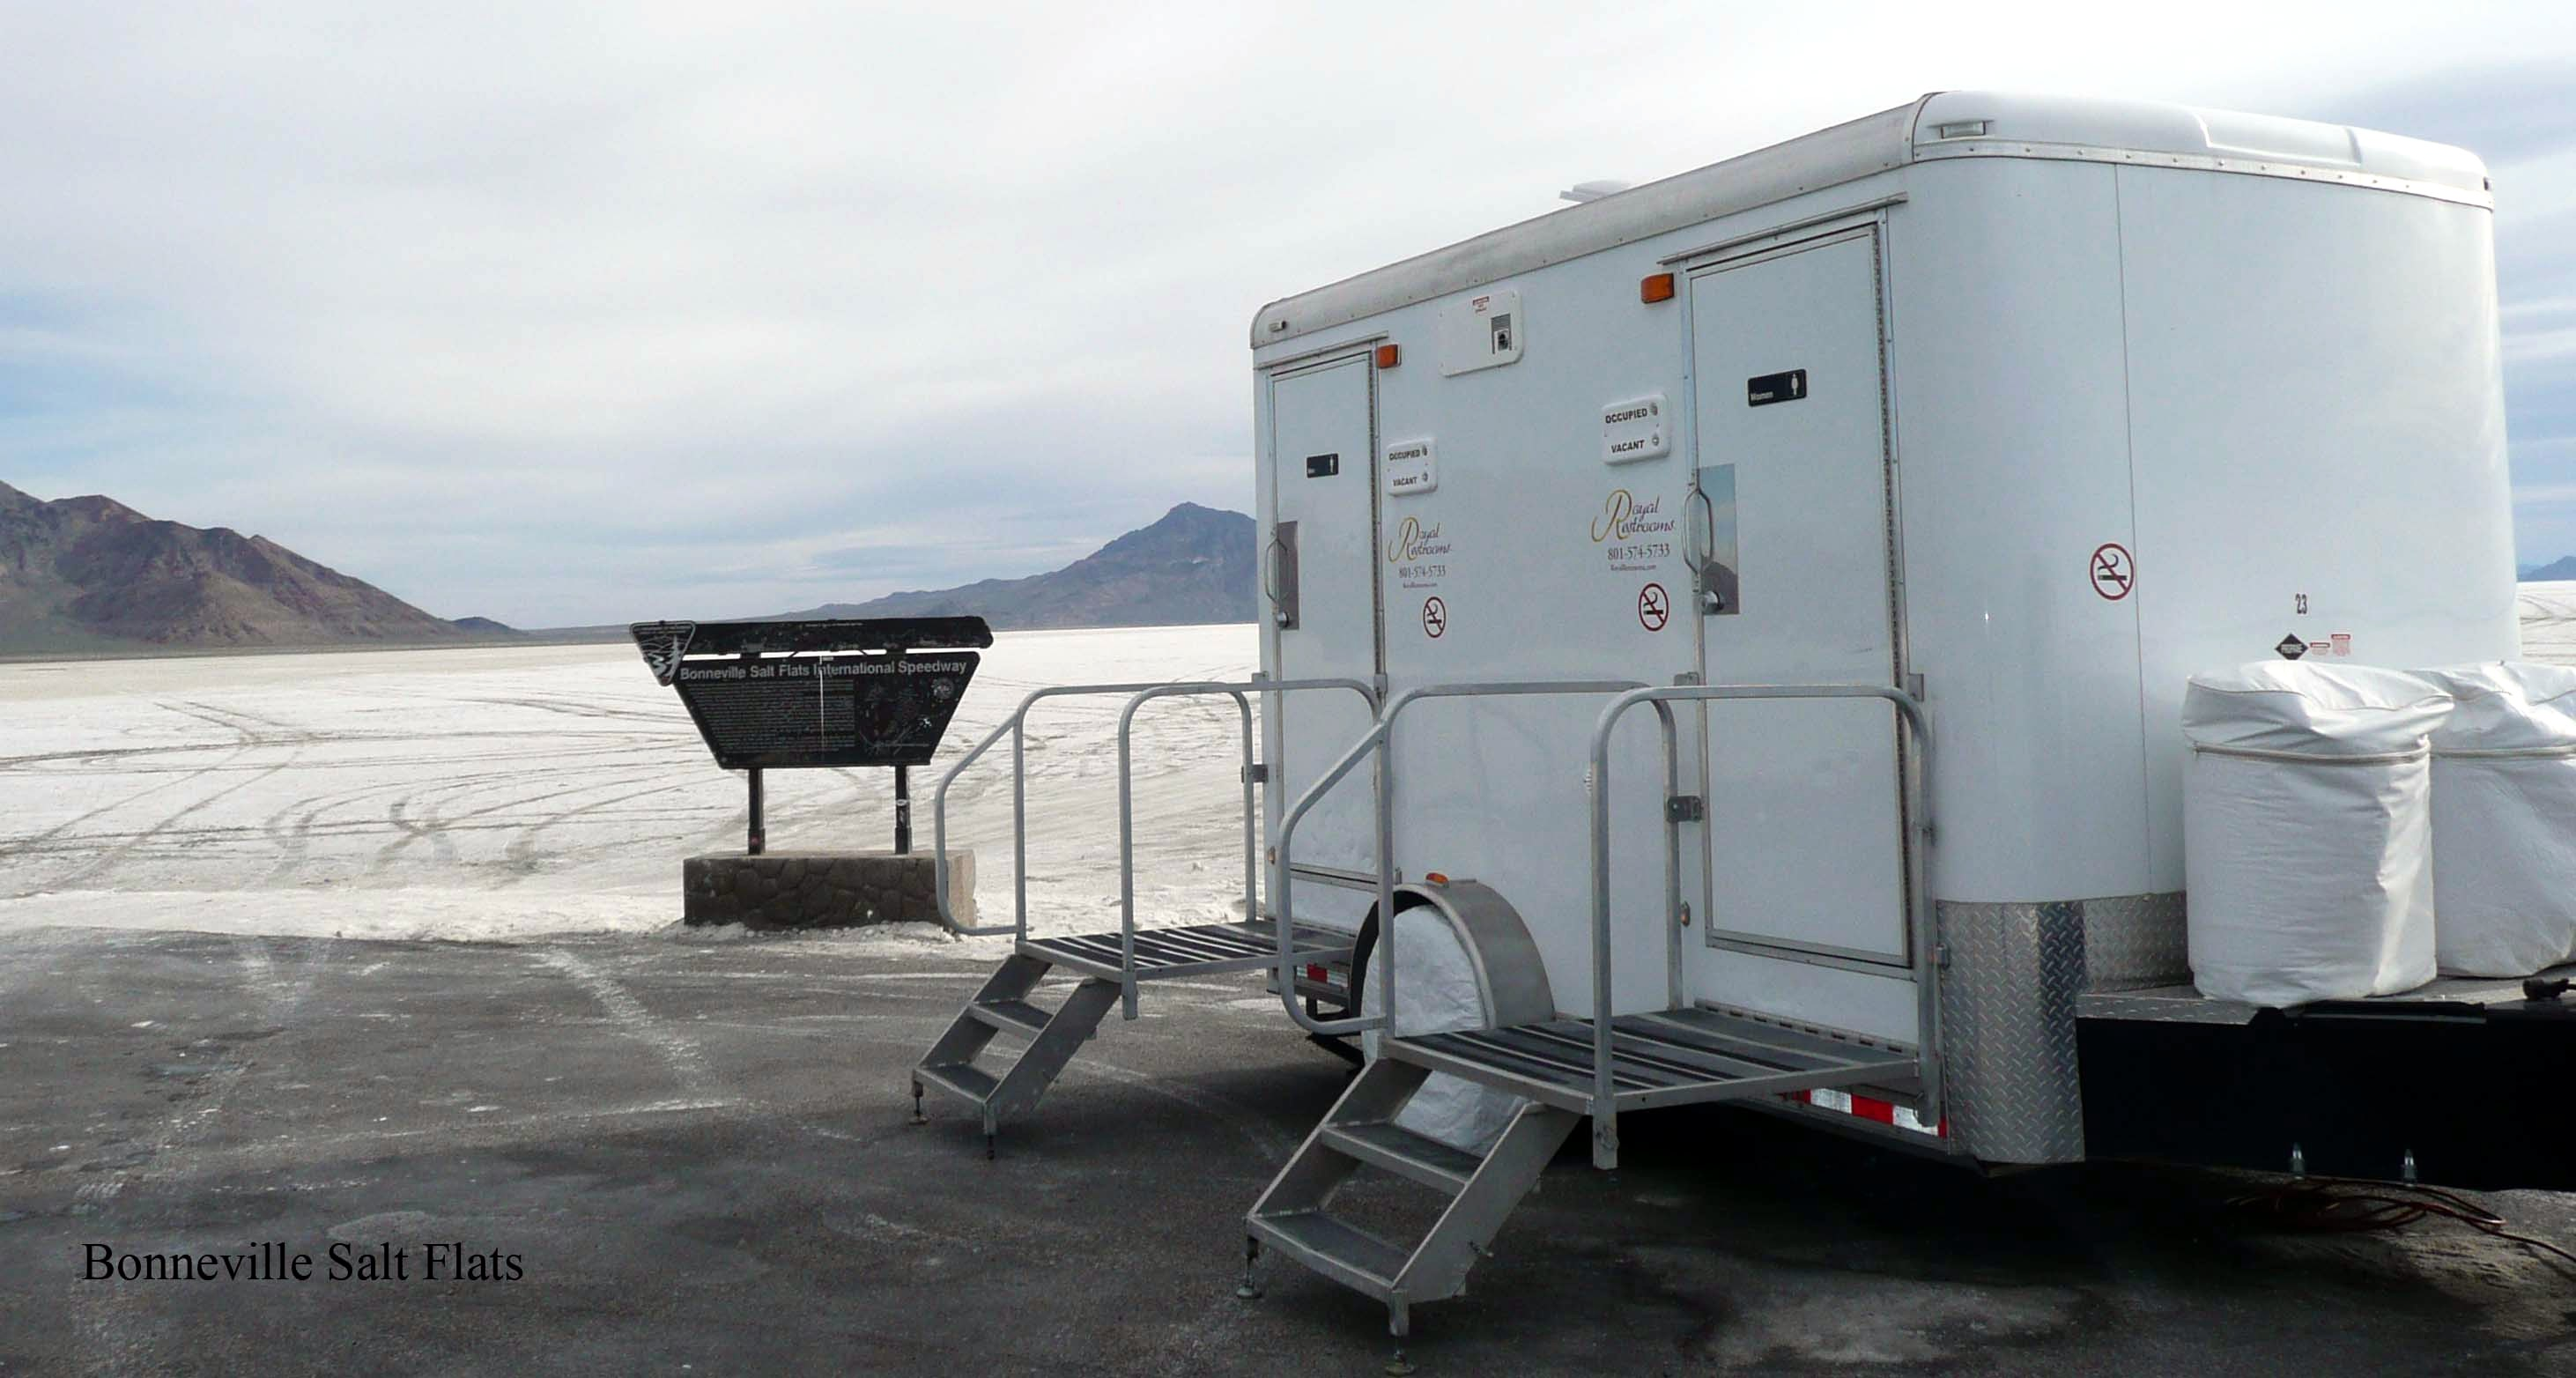 utah-portable-restrooms-at-bonneville-salt-flats